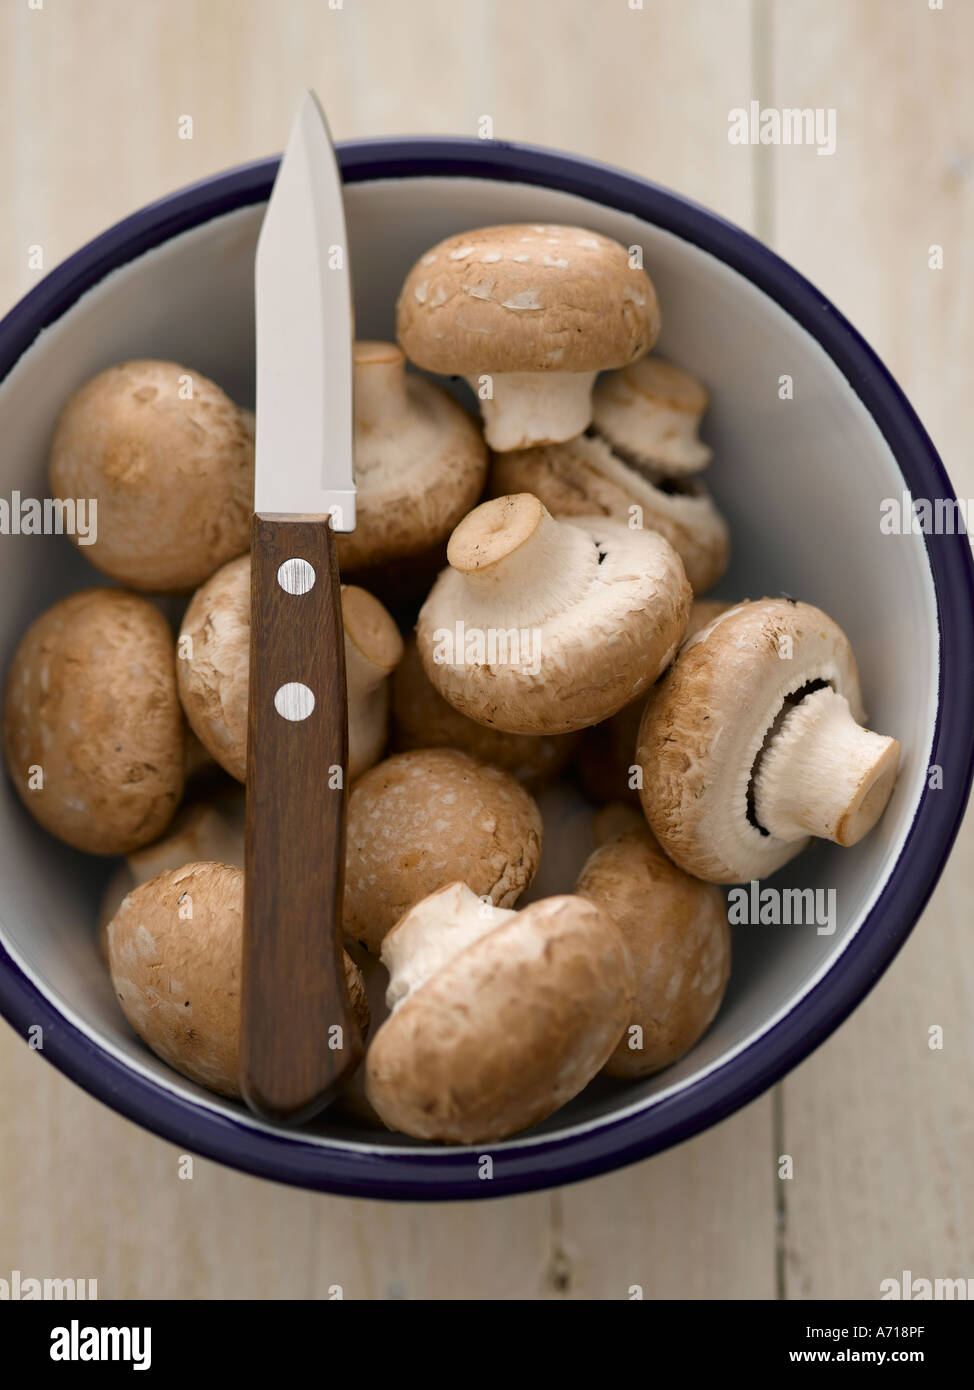 Chestnut mushrooms in enamel bowl with knife - high end Hasselblad 61mb digital image - Stock Image